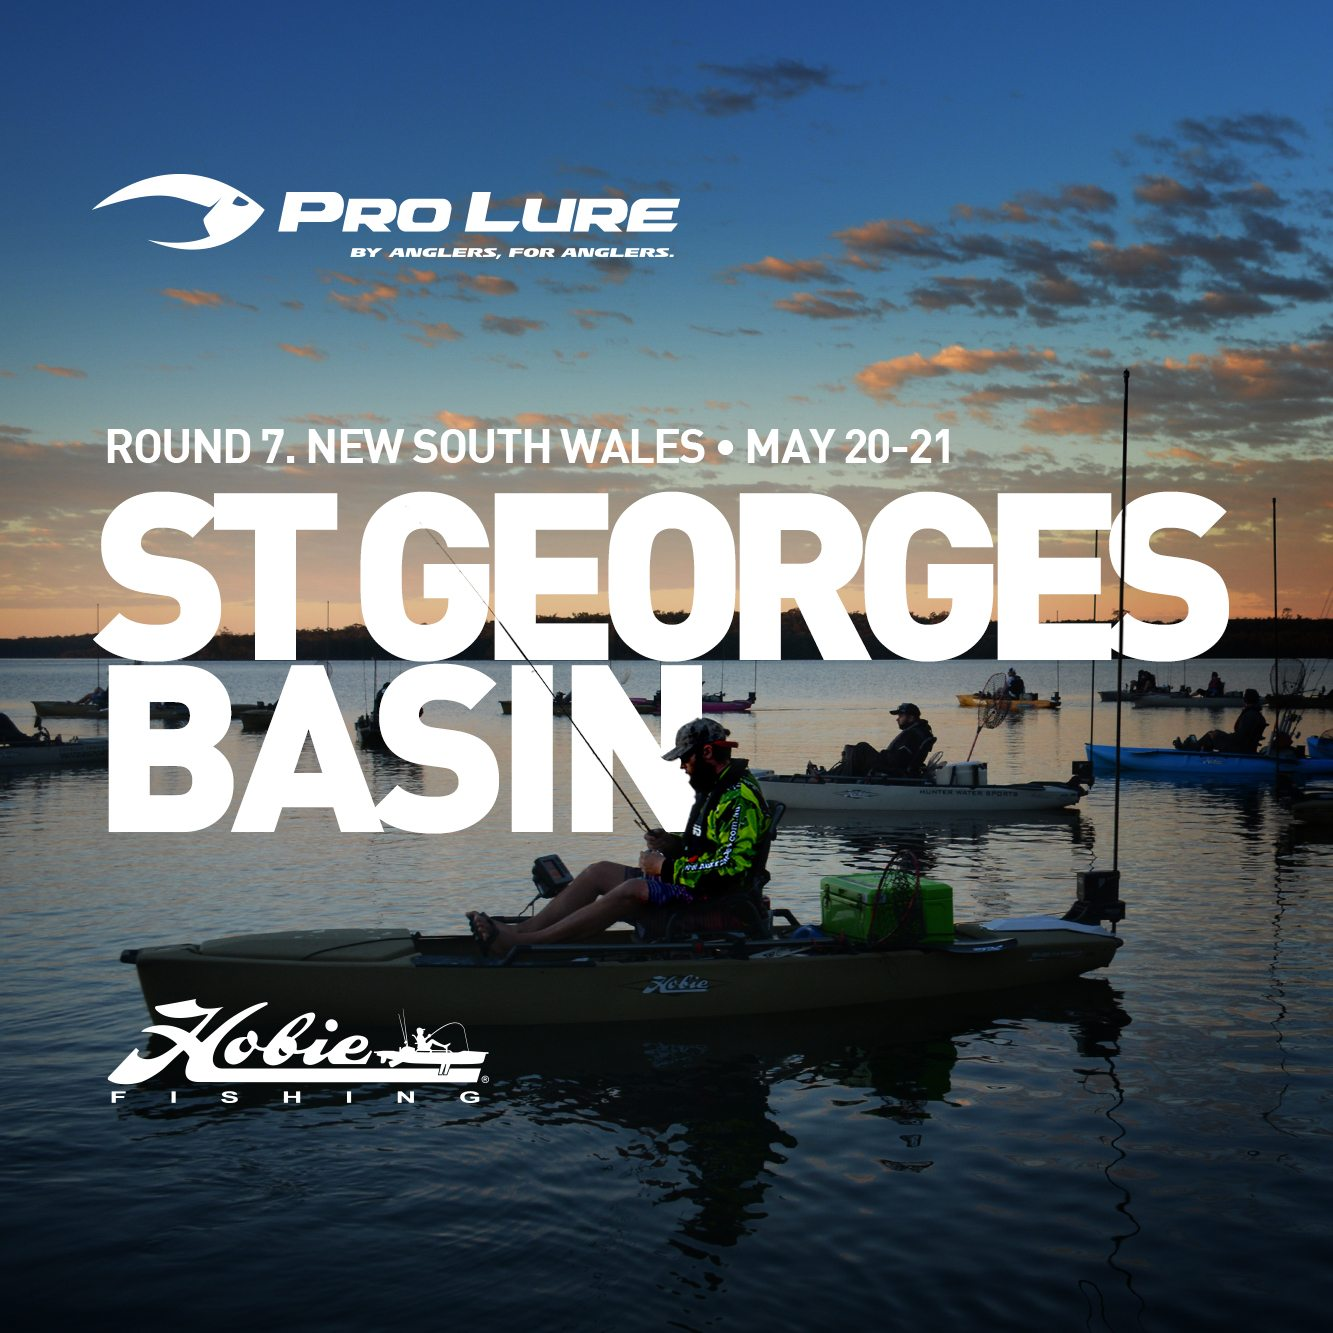 Pro Lure Round 7. St Georges Basin, NSW.